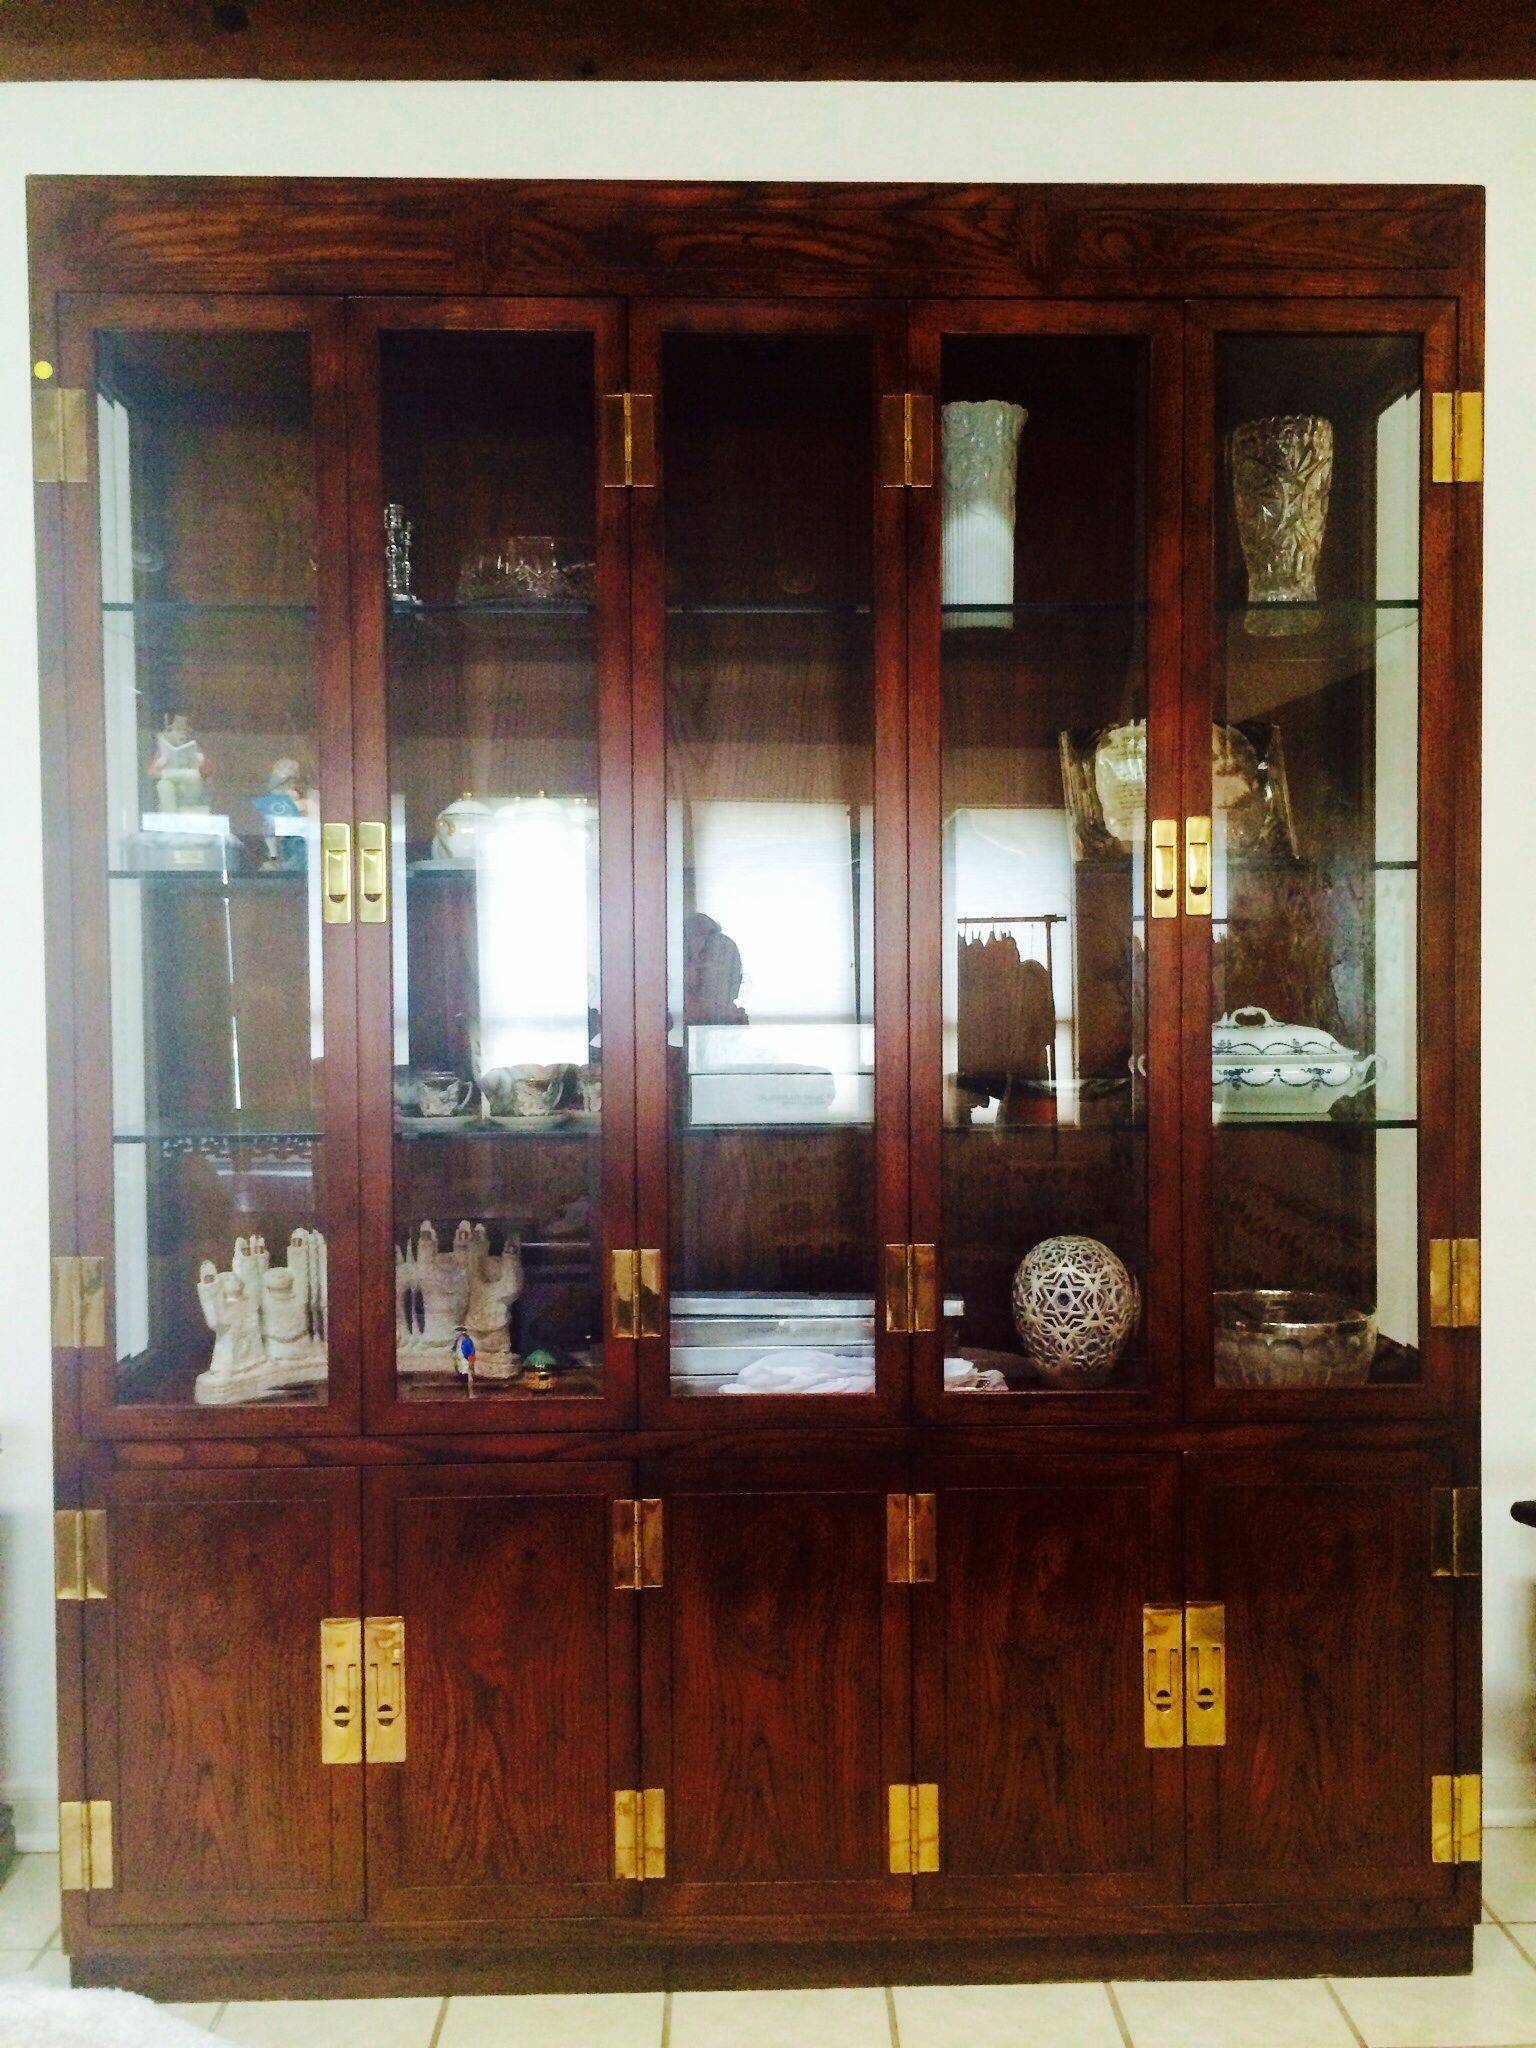 henredon china cabinet with working lighting: four glass doors on